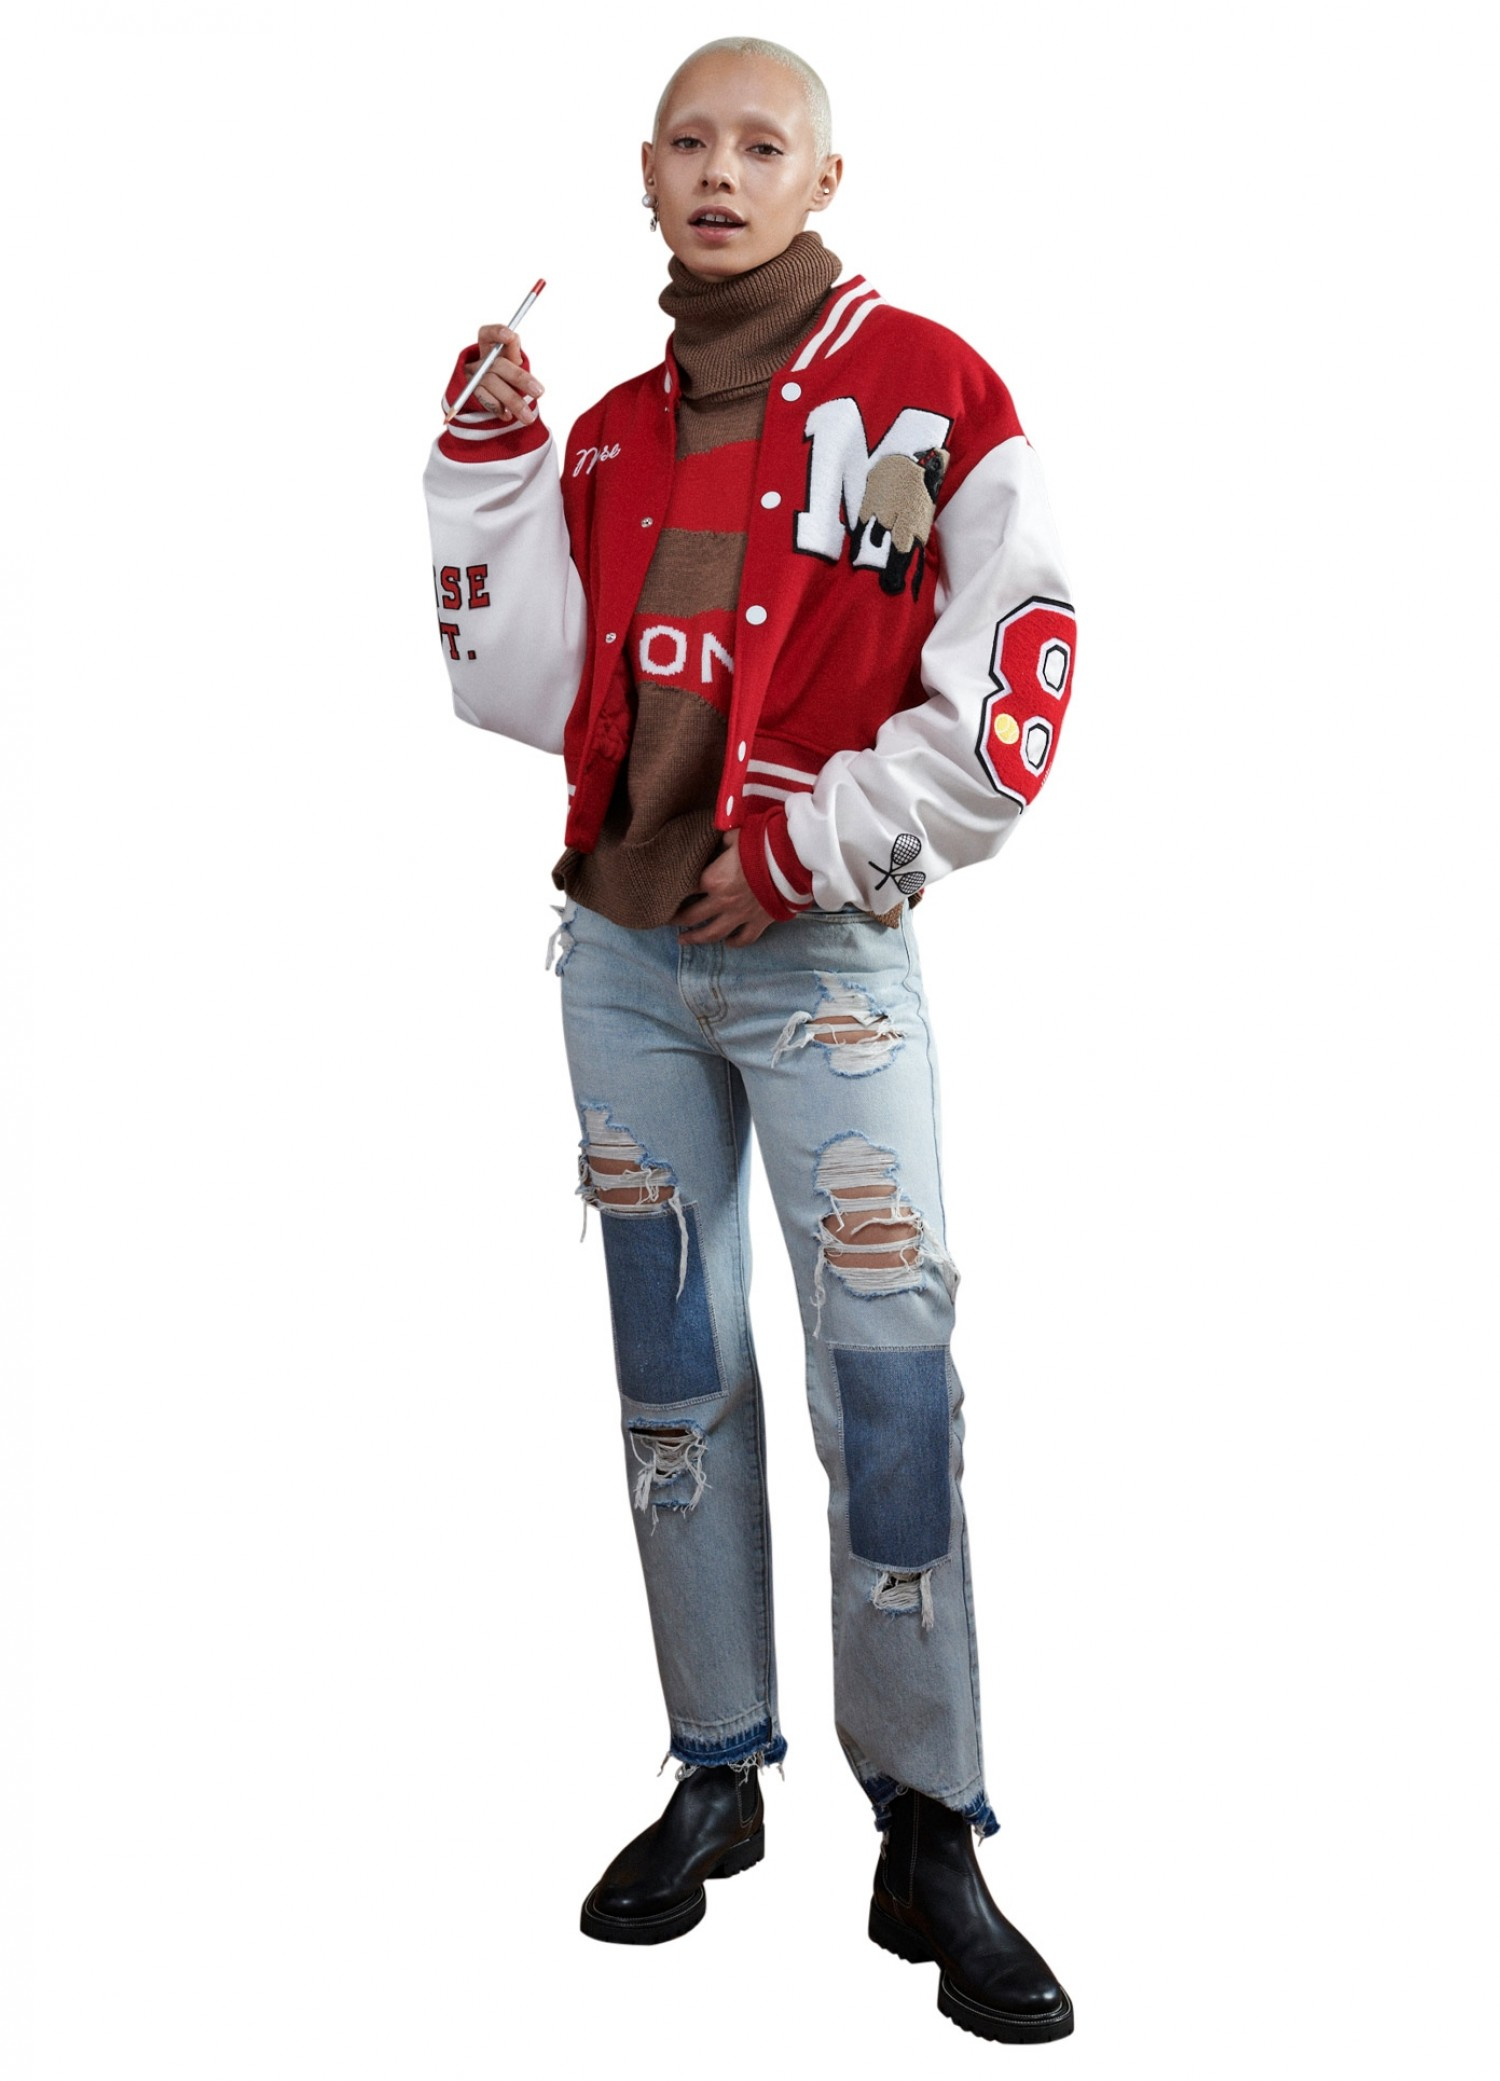 MONSE Cropped Letterman Jacket in White and Scarlet on Model Front View